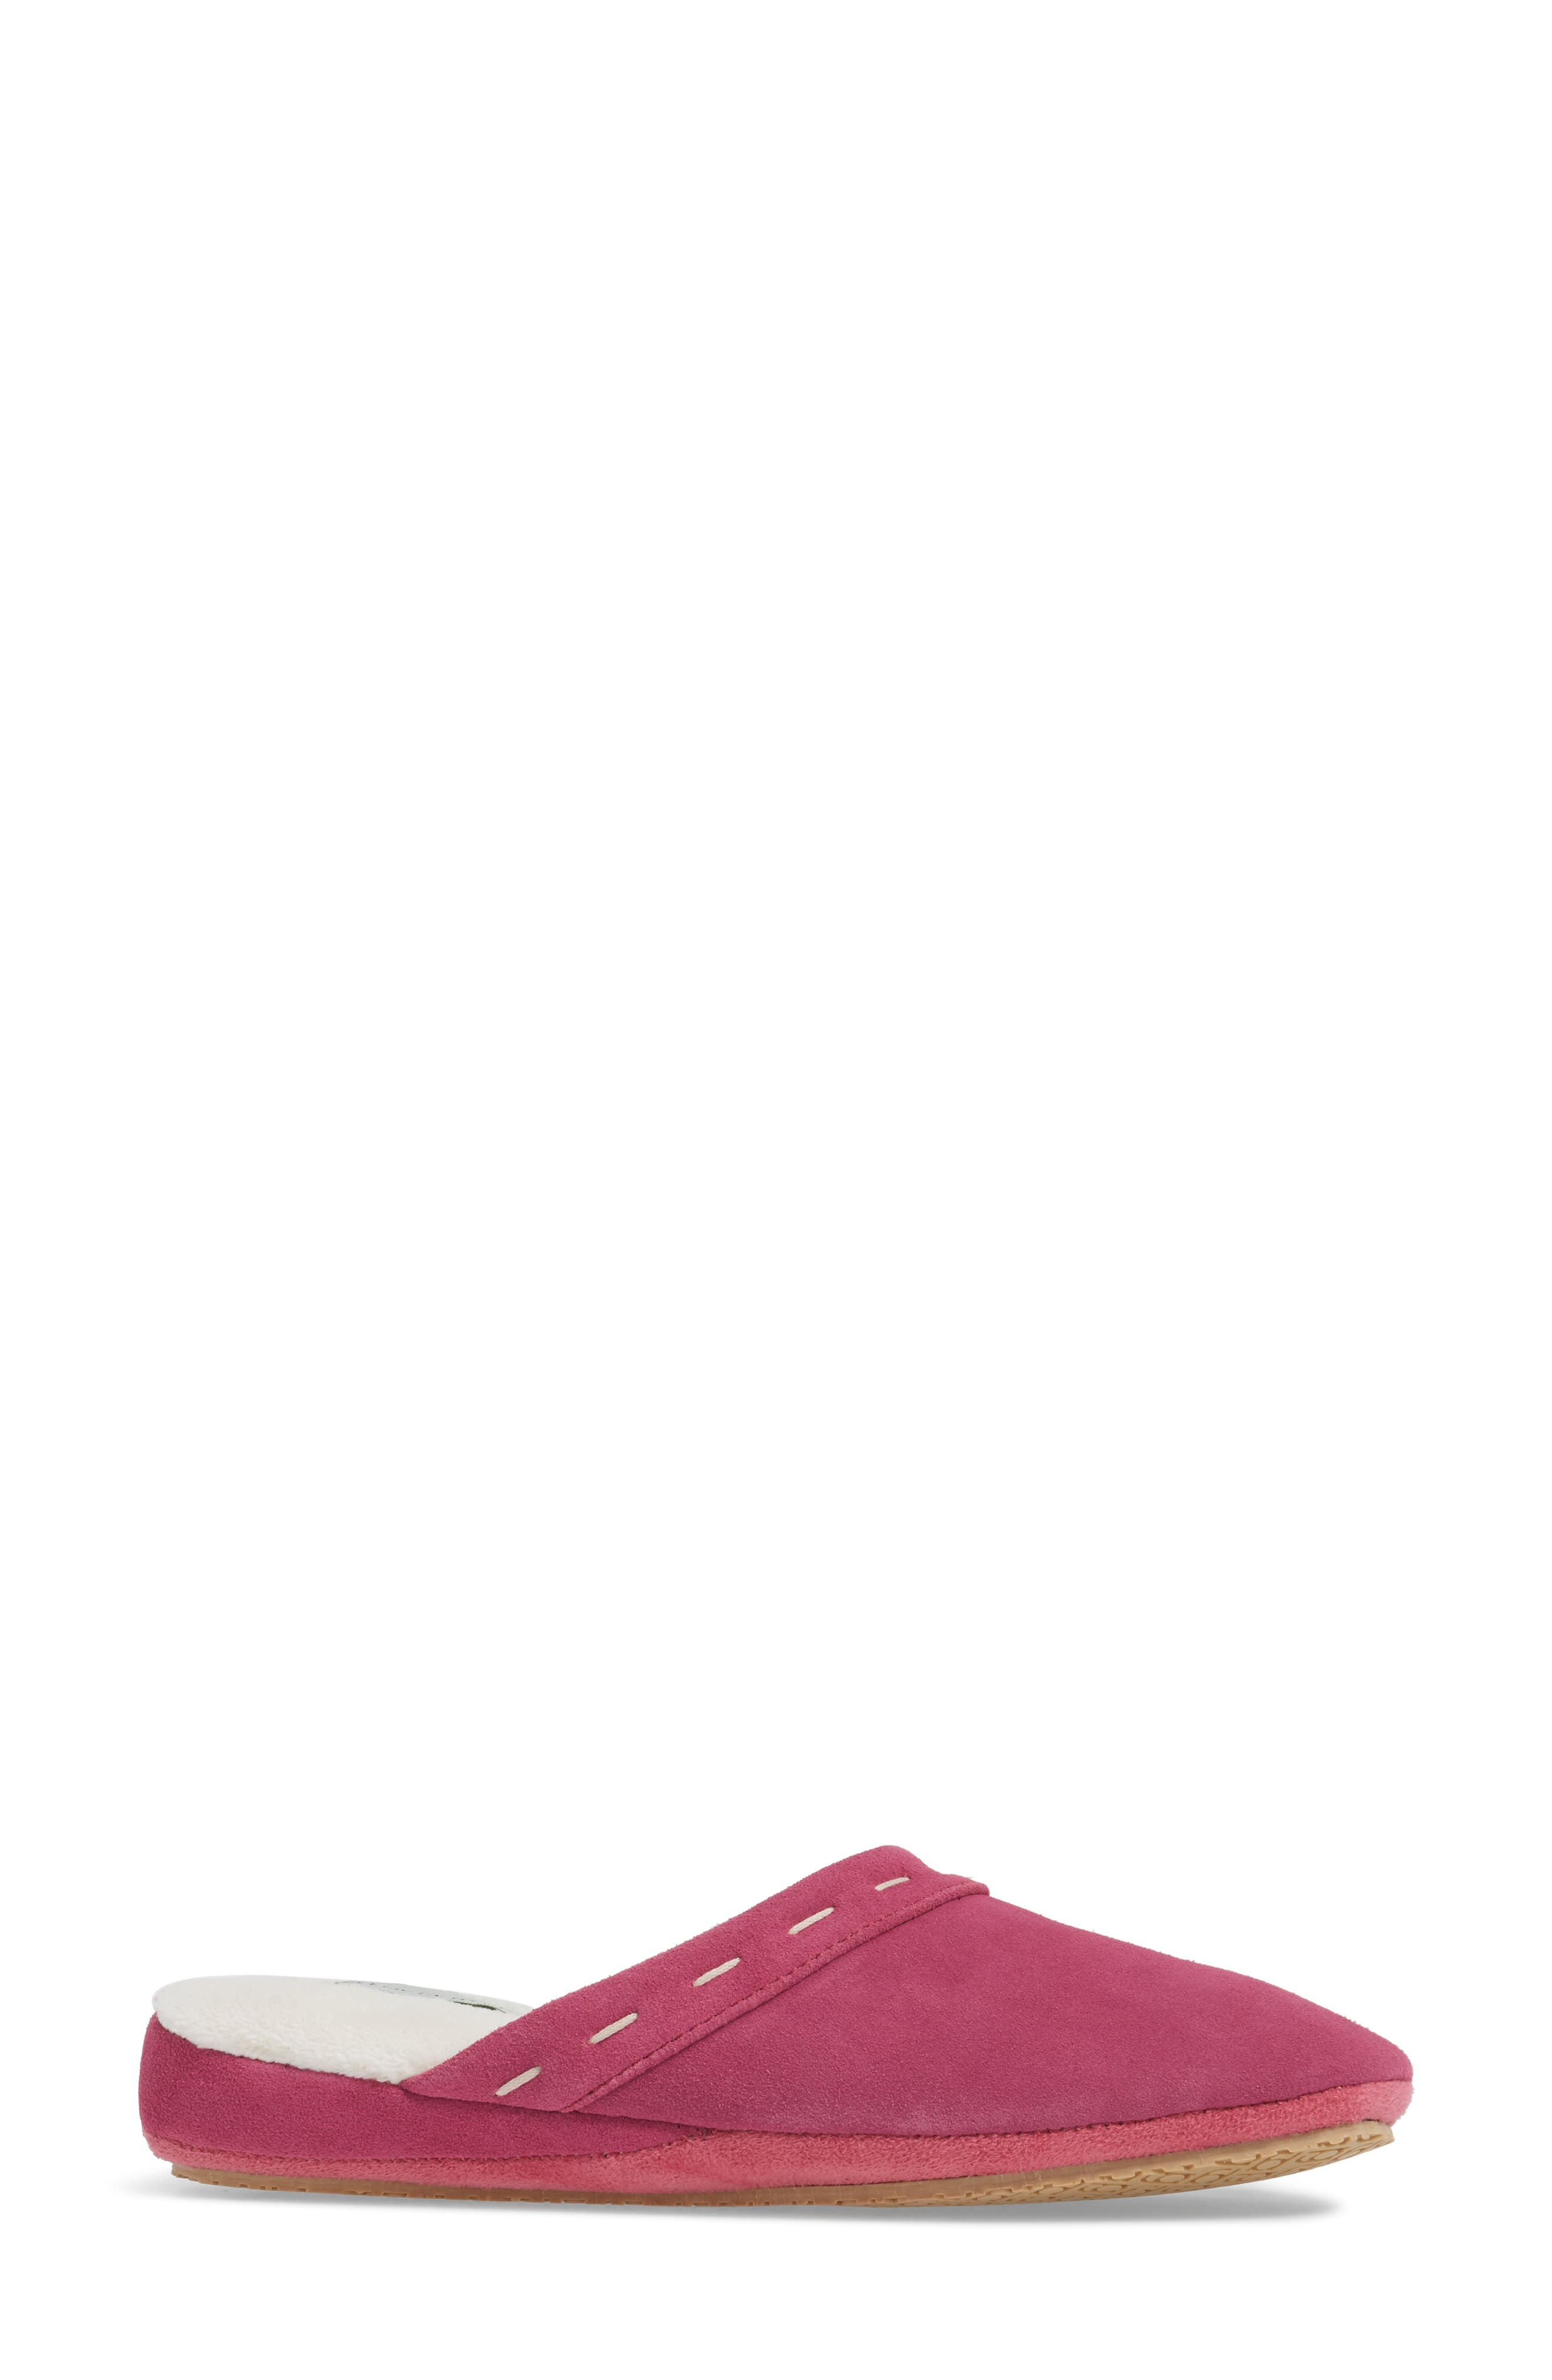 Mayfair Wedge Slipper,                             Alternate thumbnail 3, color,                             Hot Pink Suede